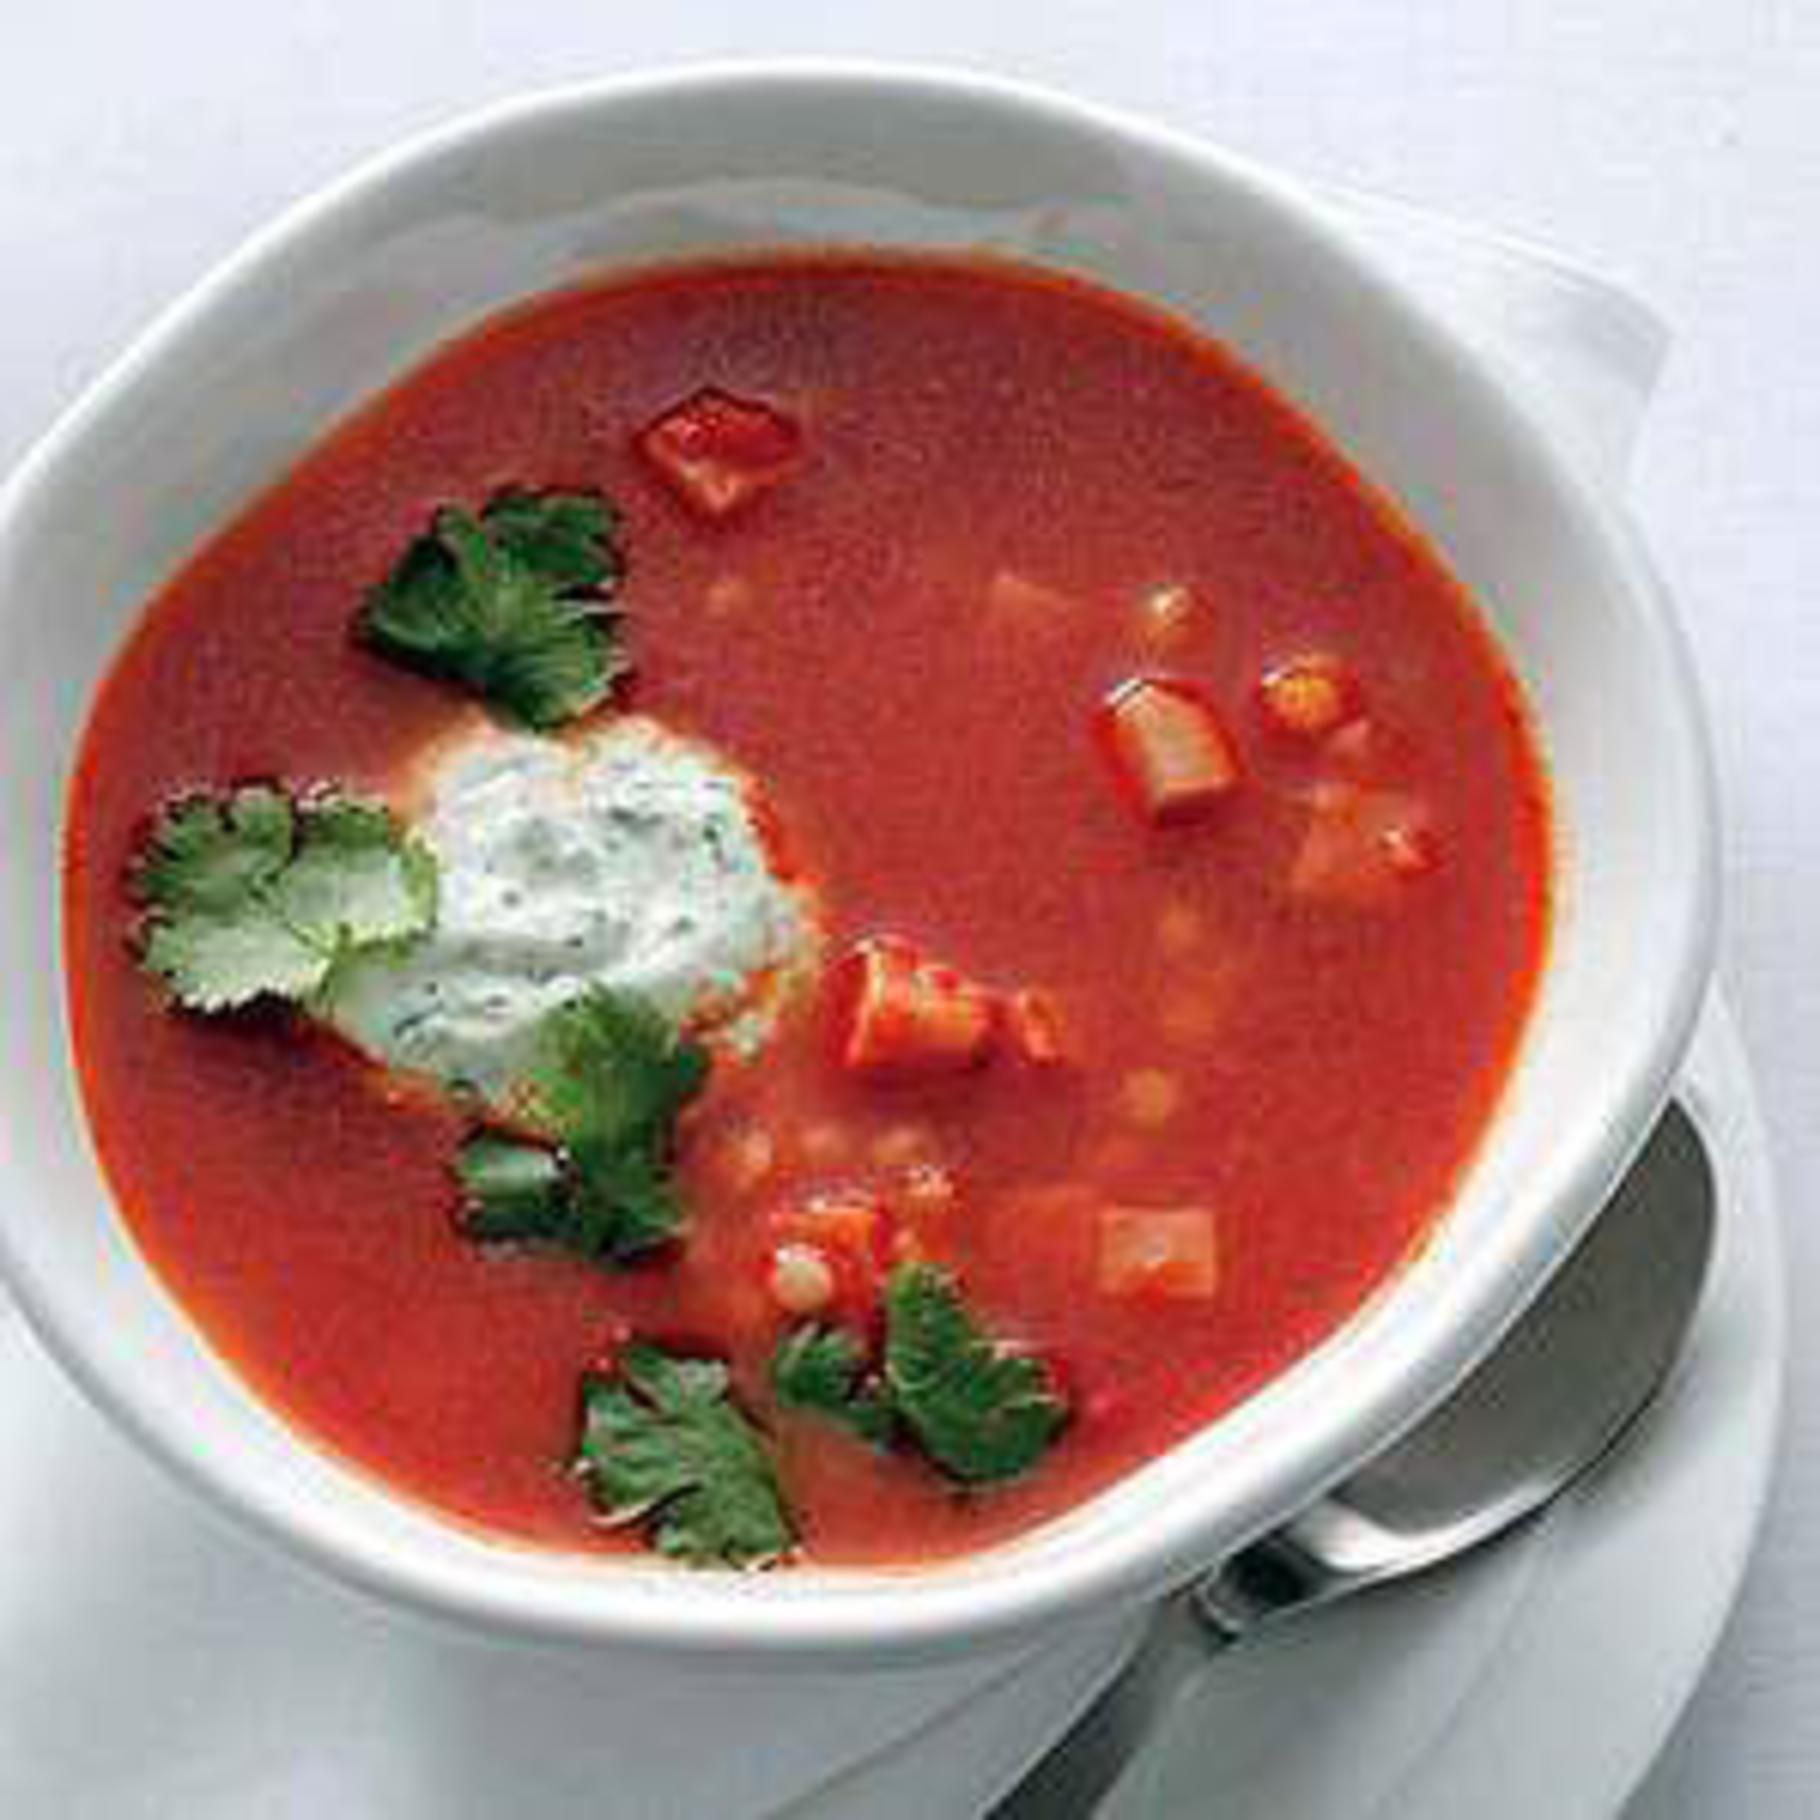 Couscous Plain Smoky tomato and couscous soup recipe couscous plain greek smoky tomato and couscous soup recipe couscous plain greek yogurt and greek yogurt sisterspd